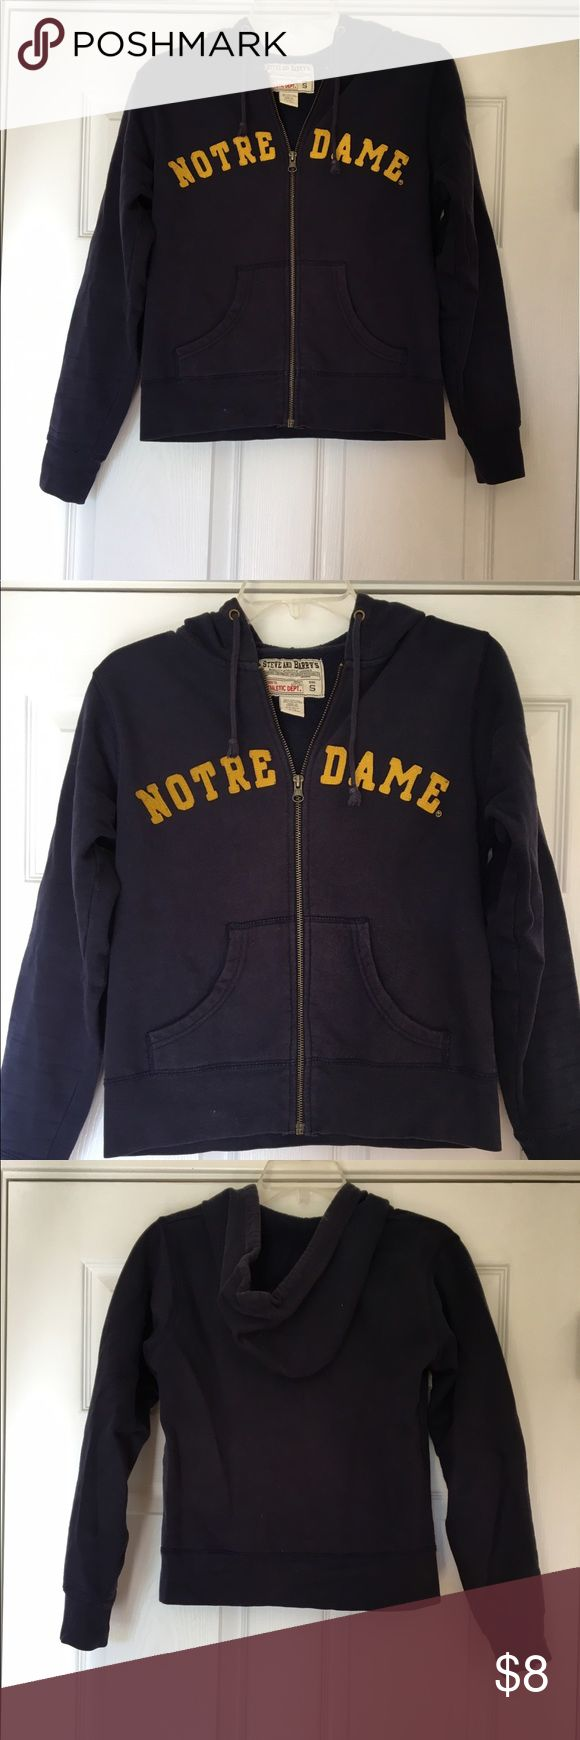 Notes Dame zip up hoodie Solid navy zip up hoodie with yellow stitched on letters. Size small, but fits more like a XS. Slight fading noticed throughout navy due to previous washings. No holes or rips noted! Steve & Barry's Tops Sweatshirts & Hoodies